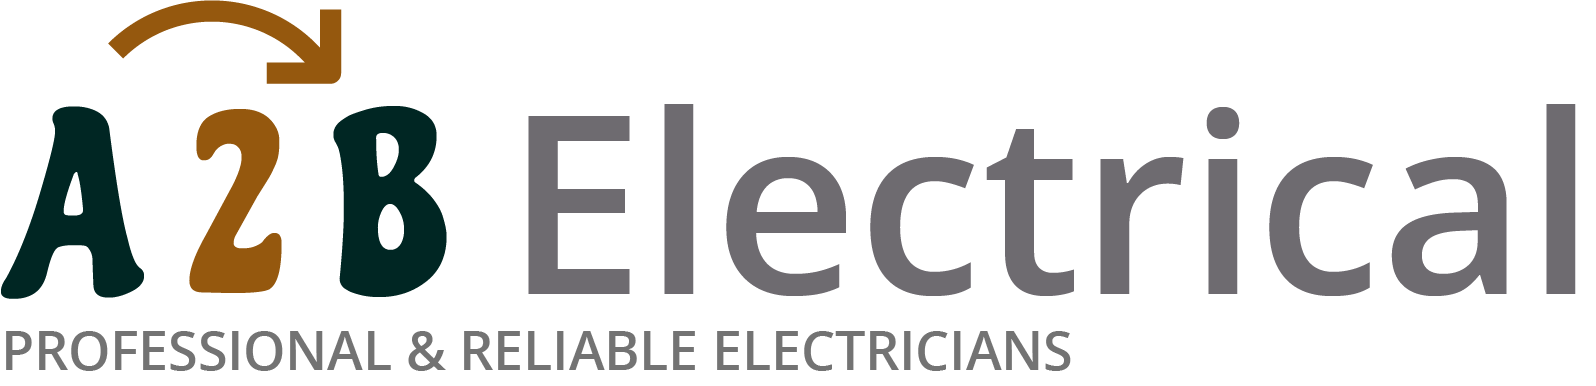 If you have electrical wiring problems in Stepney, we can provide an electrician to have a look for you.